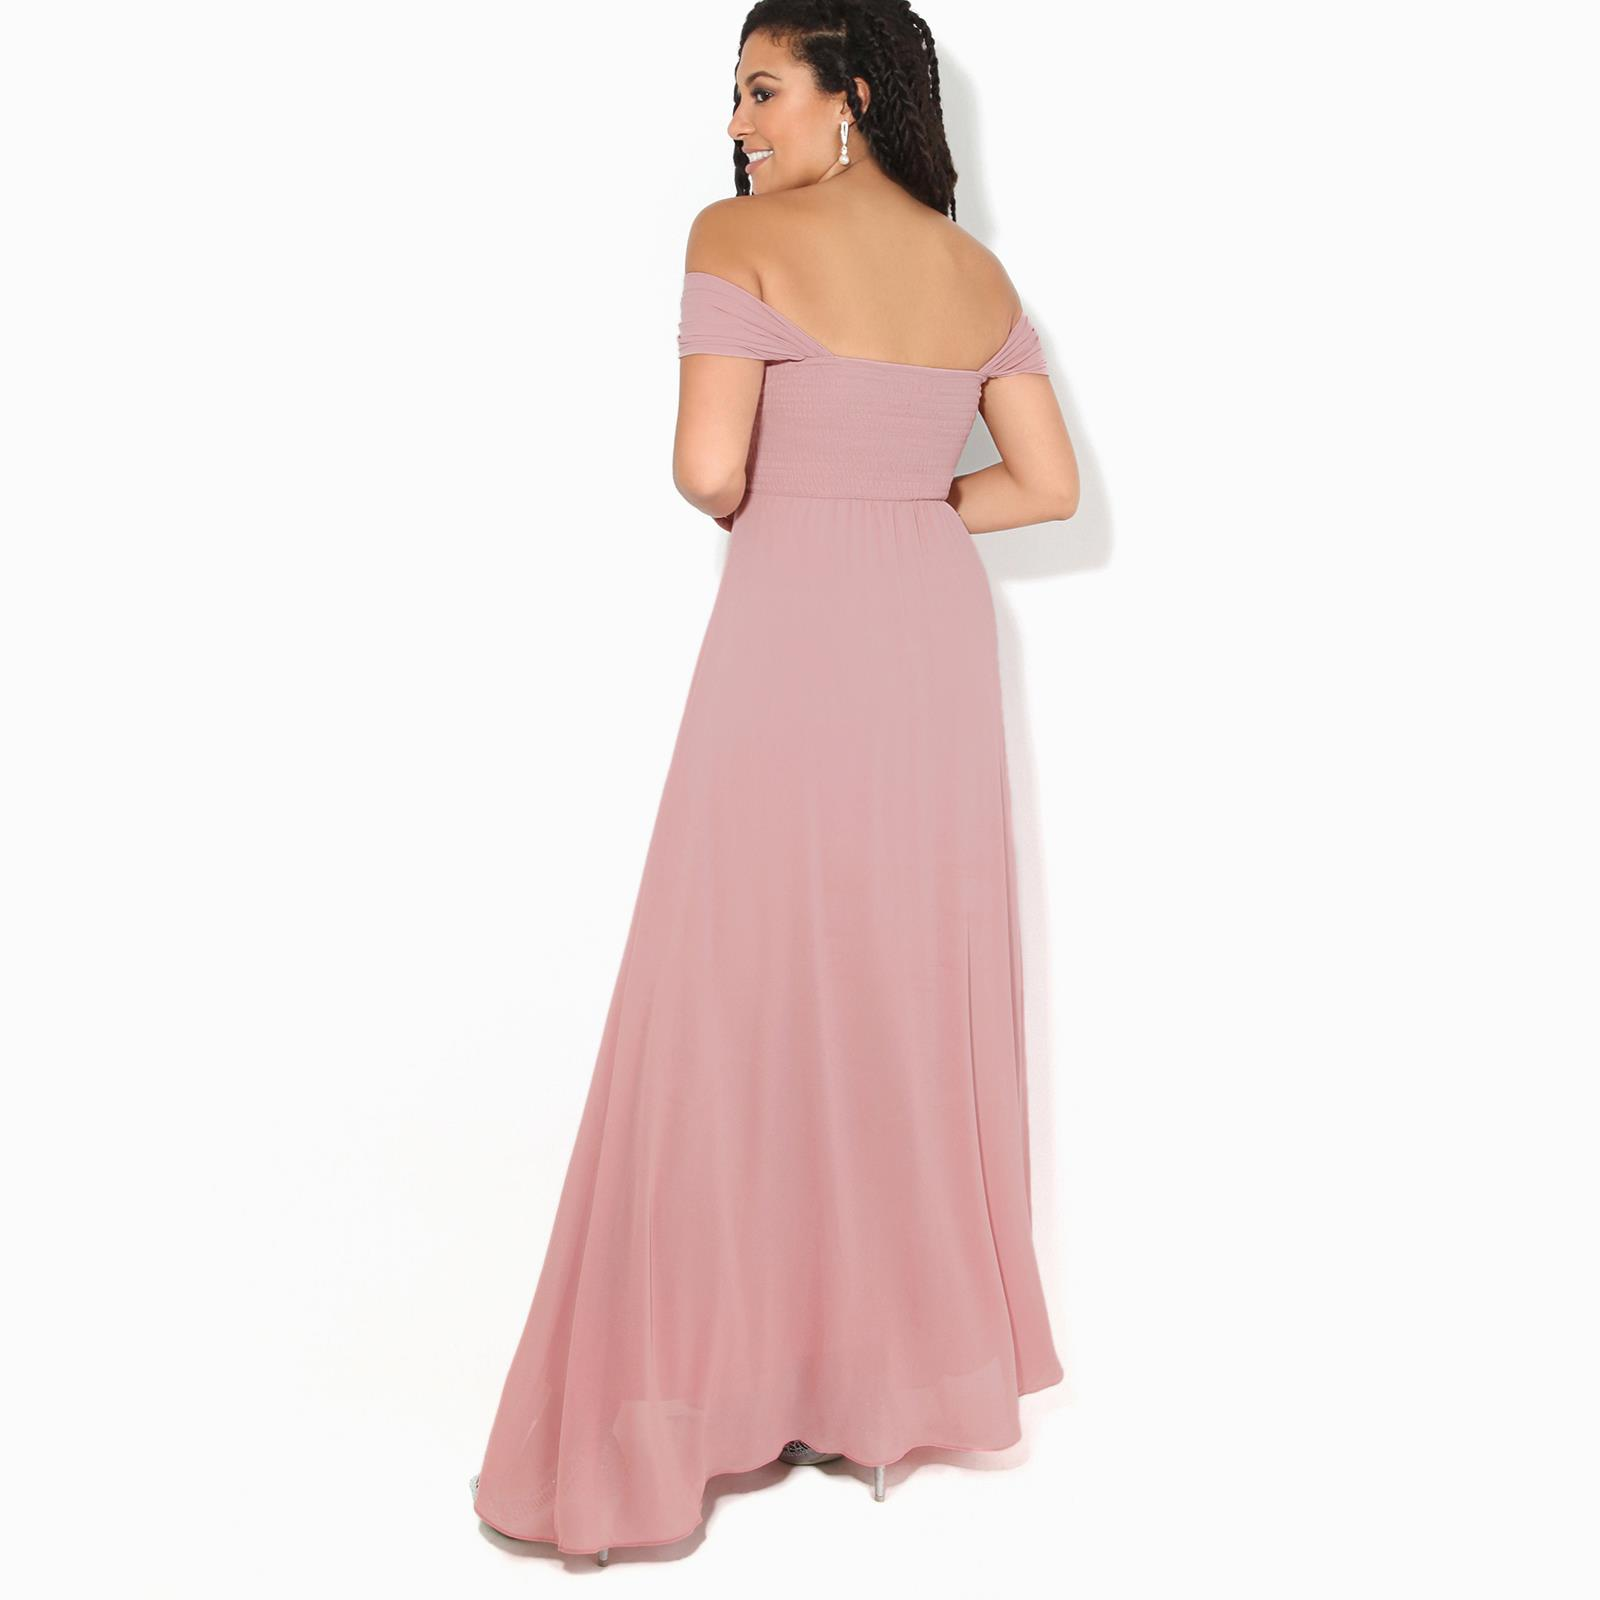 Women-Formal-Dress-Evening-Wedding-Ball-Long-Gown-Maxi-Prom-On-Off-Shoulder-8-18 thumbnail 22